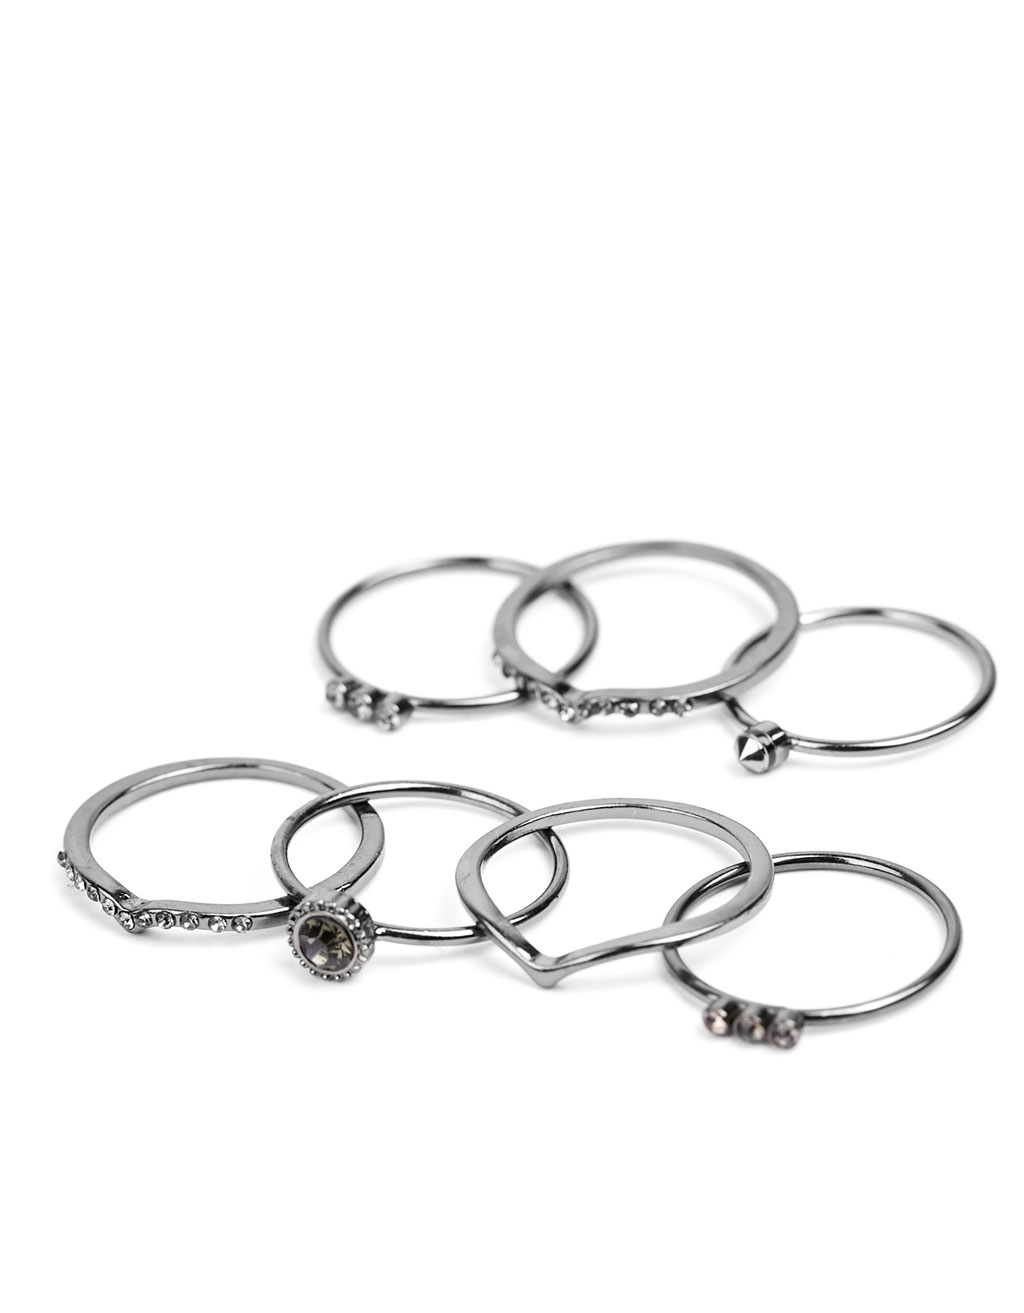 Set of 6 black rings